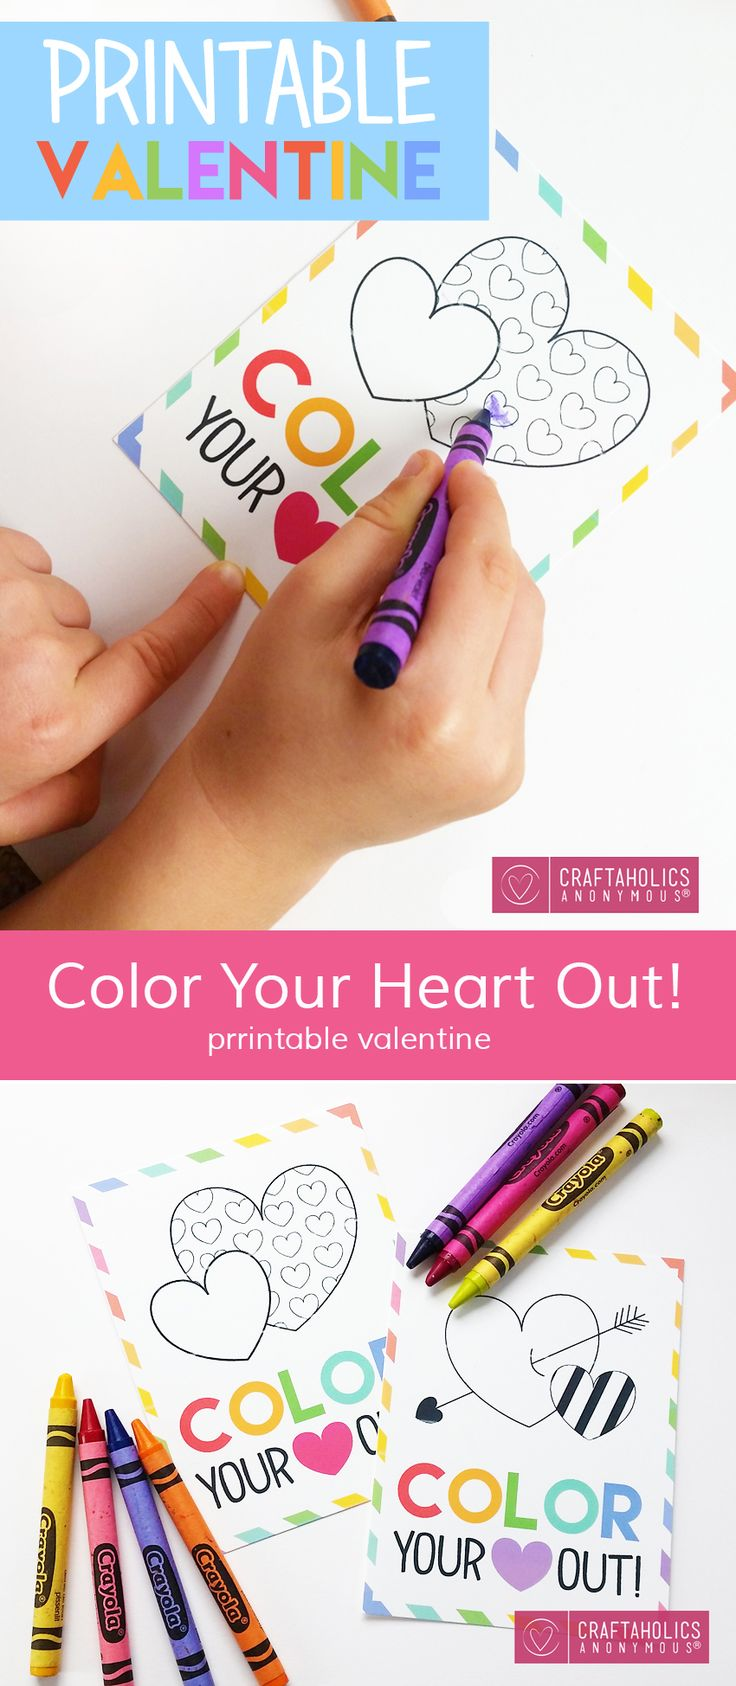 Valentine bookmark to color - Free Coloring Valentine Printable For Kids This Is Perfect For No Food Valentines At School